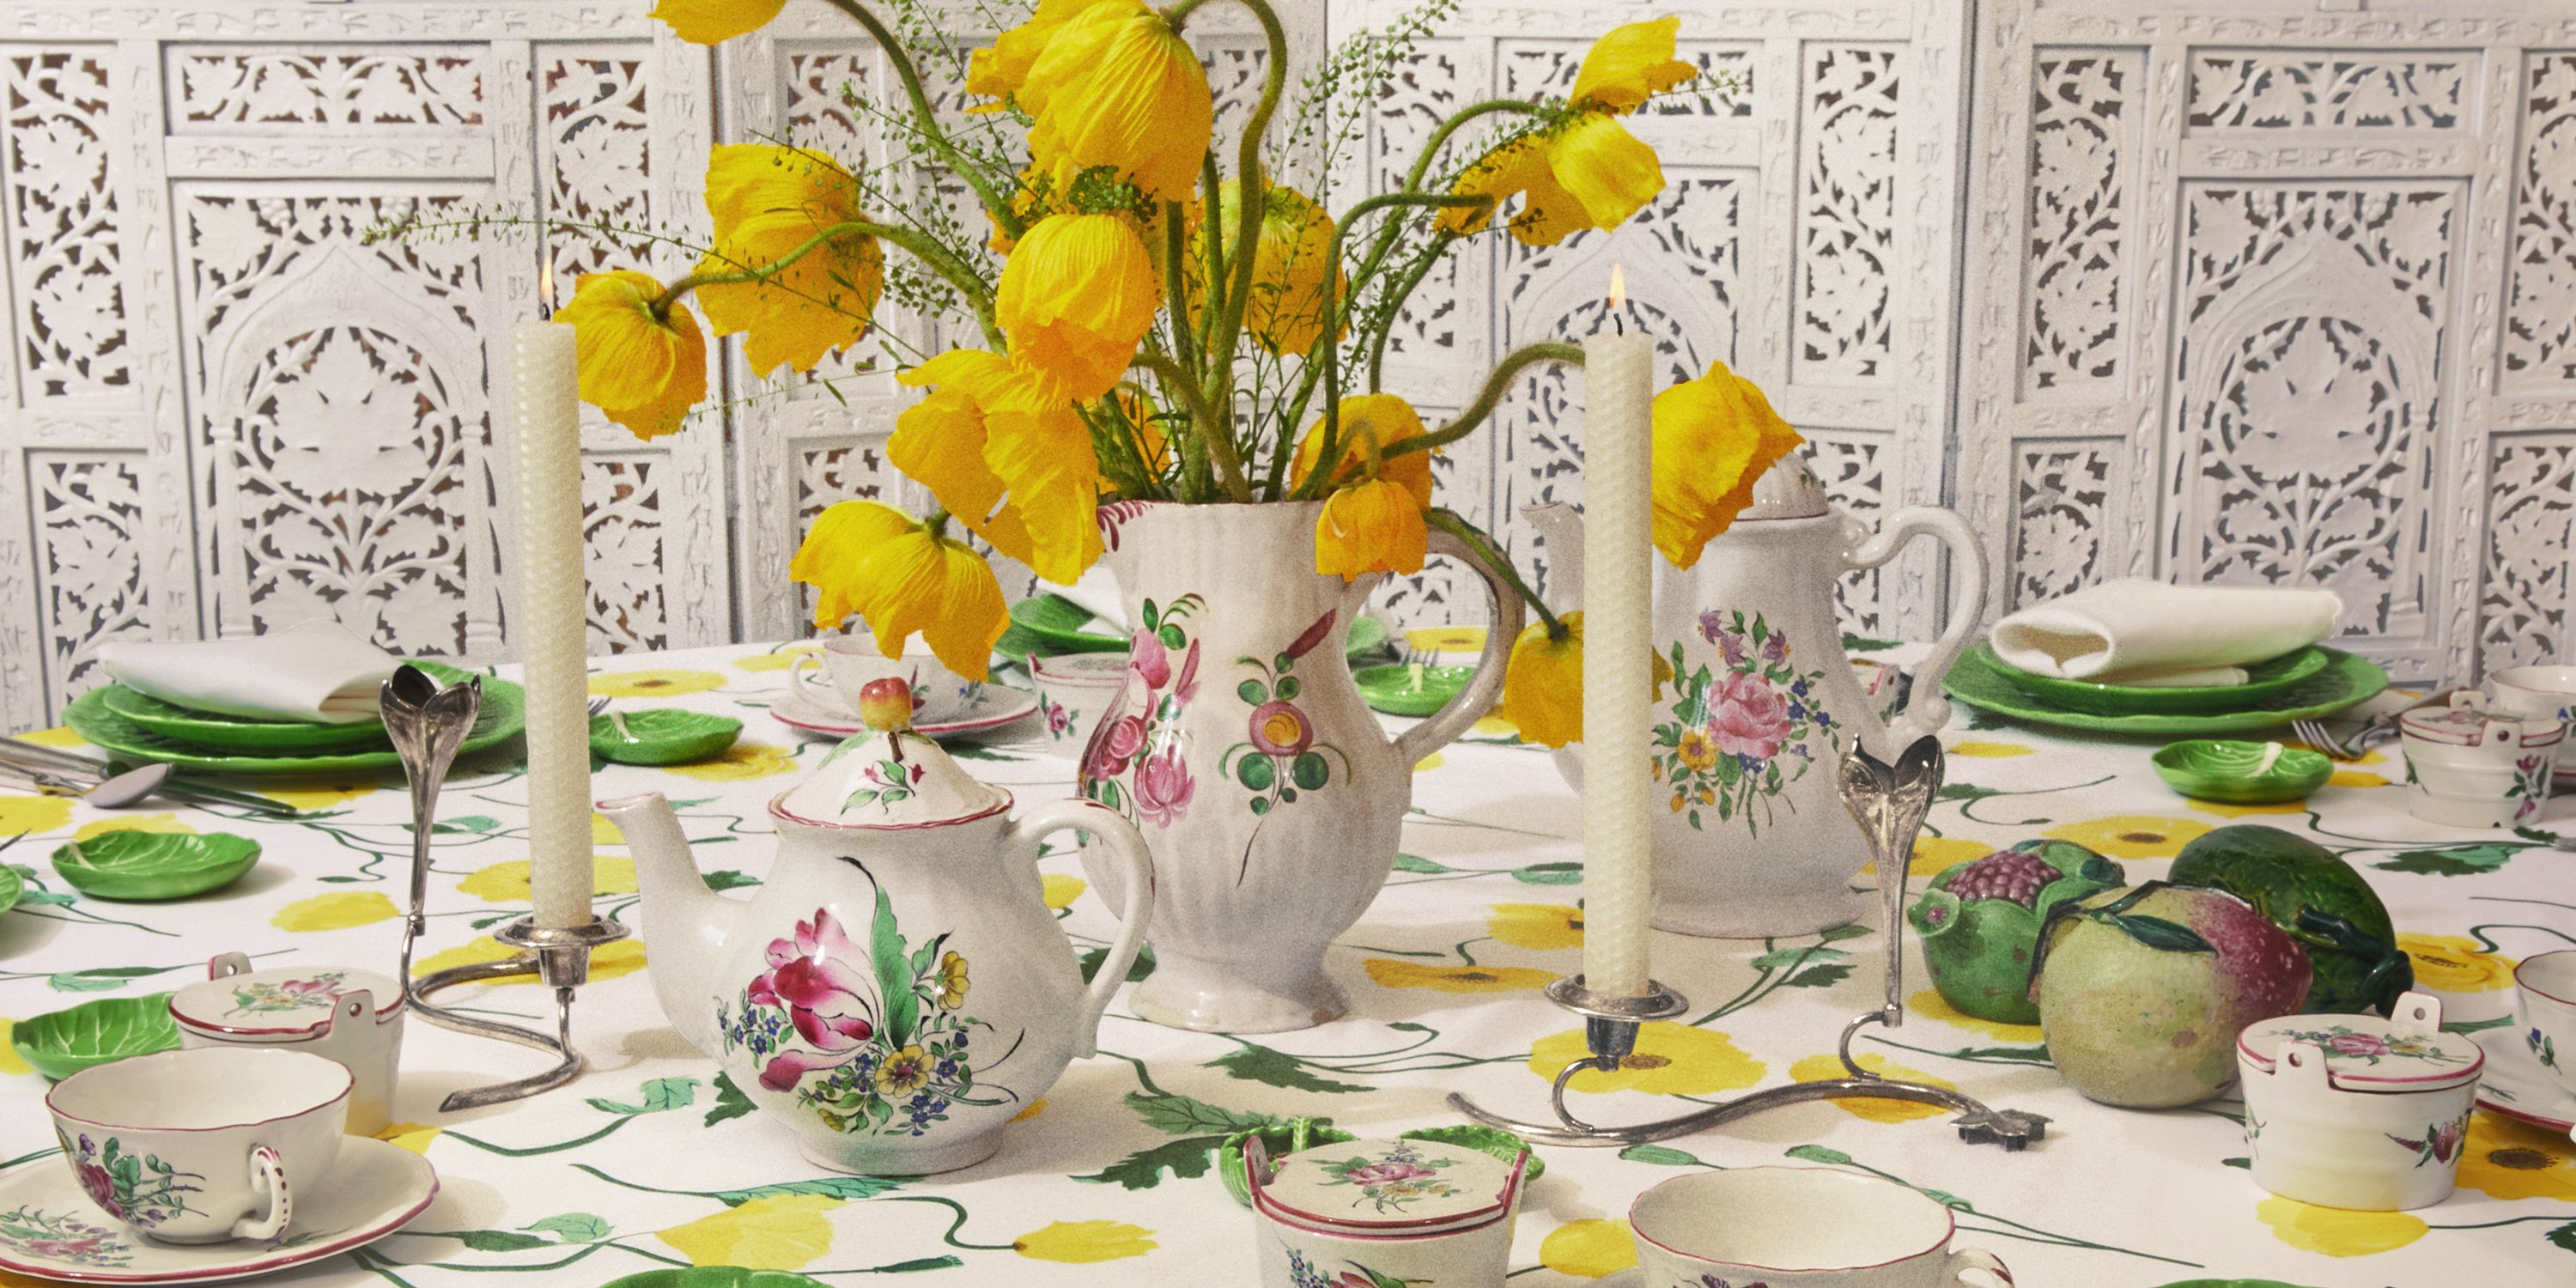 Tory Burch Just Launched a Garden-Inspired Home Line With Moda Operandi